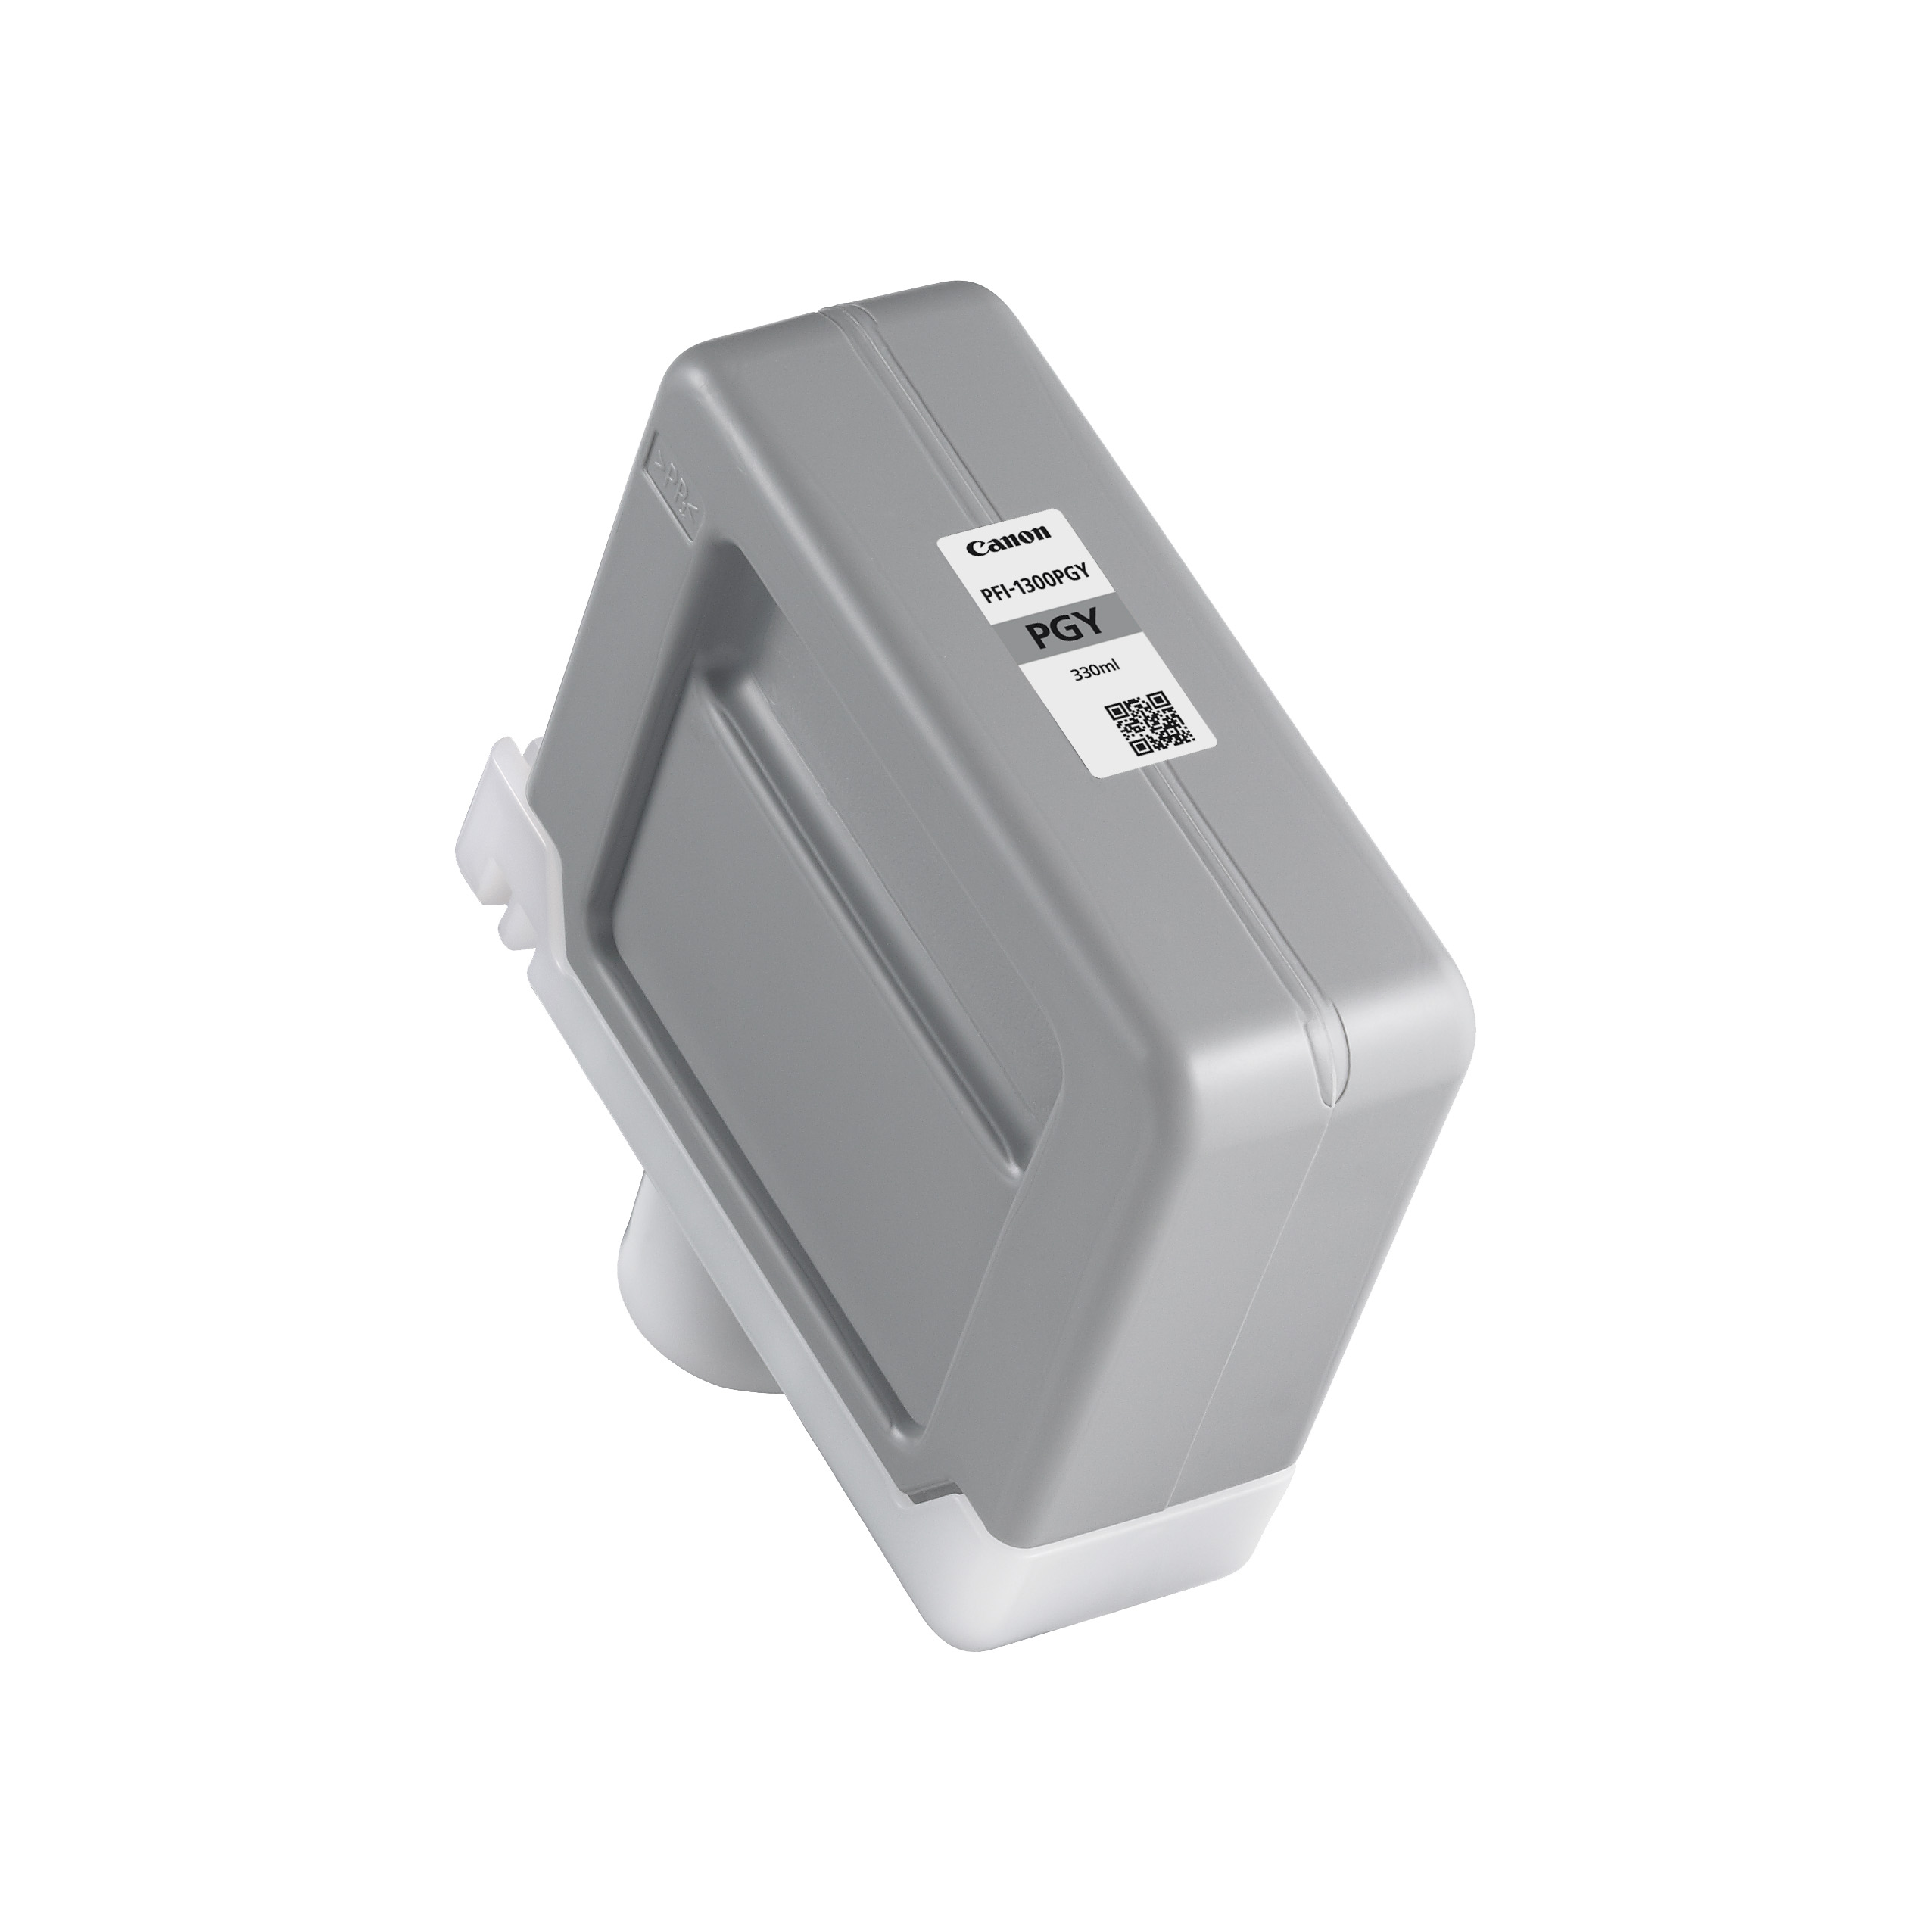 Canon PFI-1300PGY Photo Grey Ink Tank - 330ml Cartridge - for Canon PRO-2000, PRO-4000 Printer - 0818C001AA - next day delivery from GDS Graphic Design Supplies Ltd